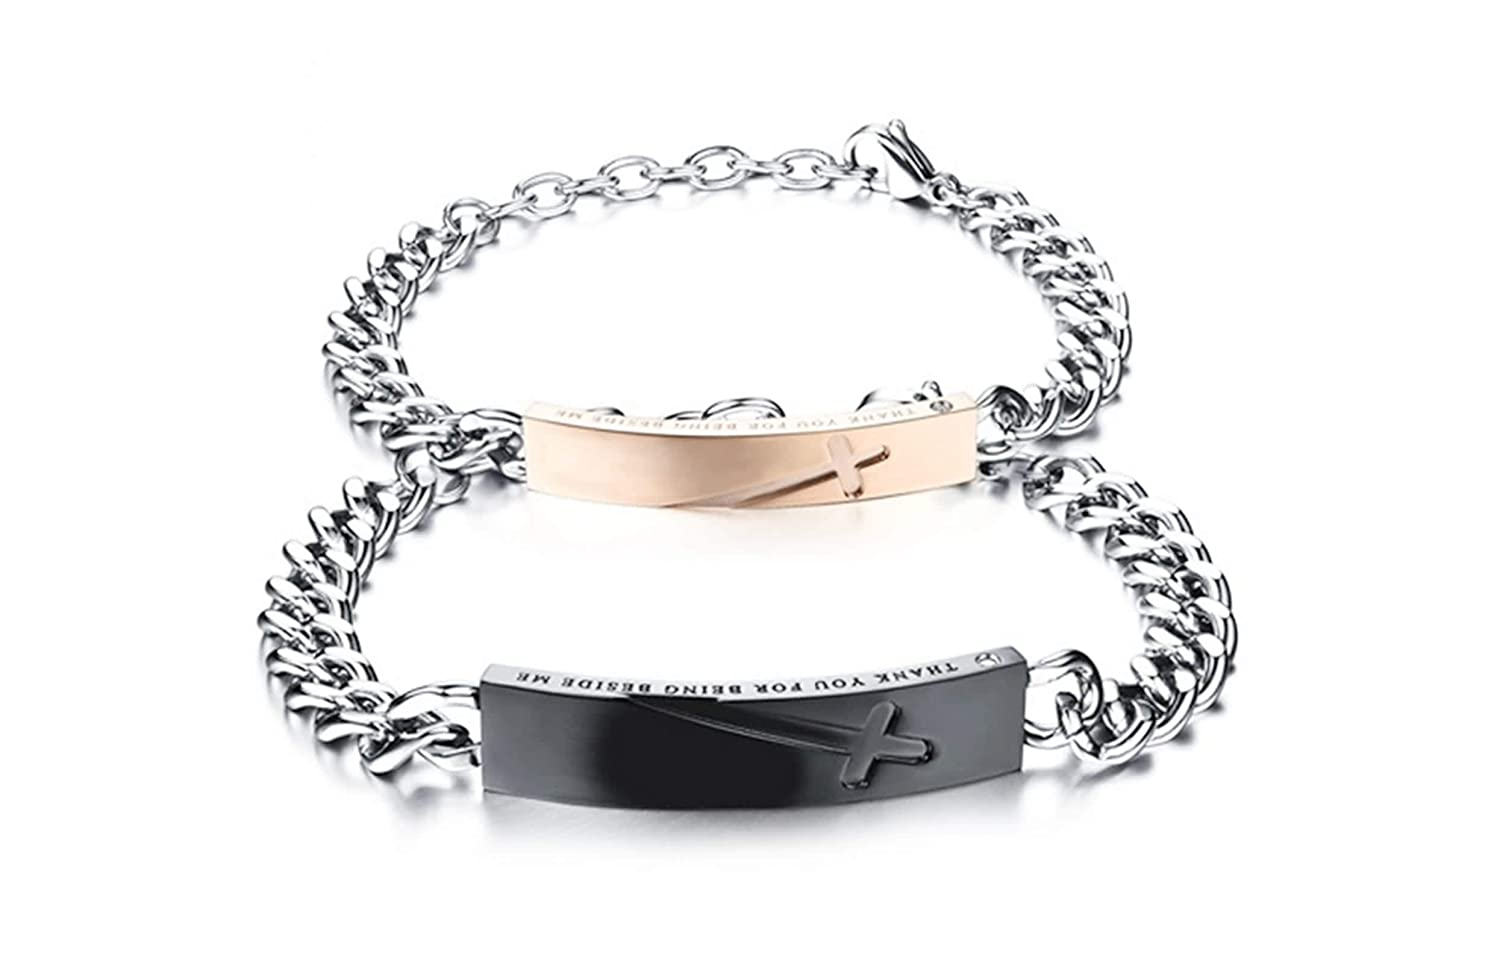 ANAZOZ Jewelry Stainless Steel Chain Link Bracelet for Couple Rectangle Cross Zirconia Black Rose Gold